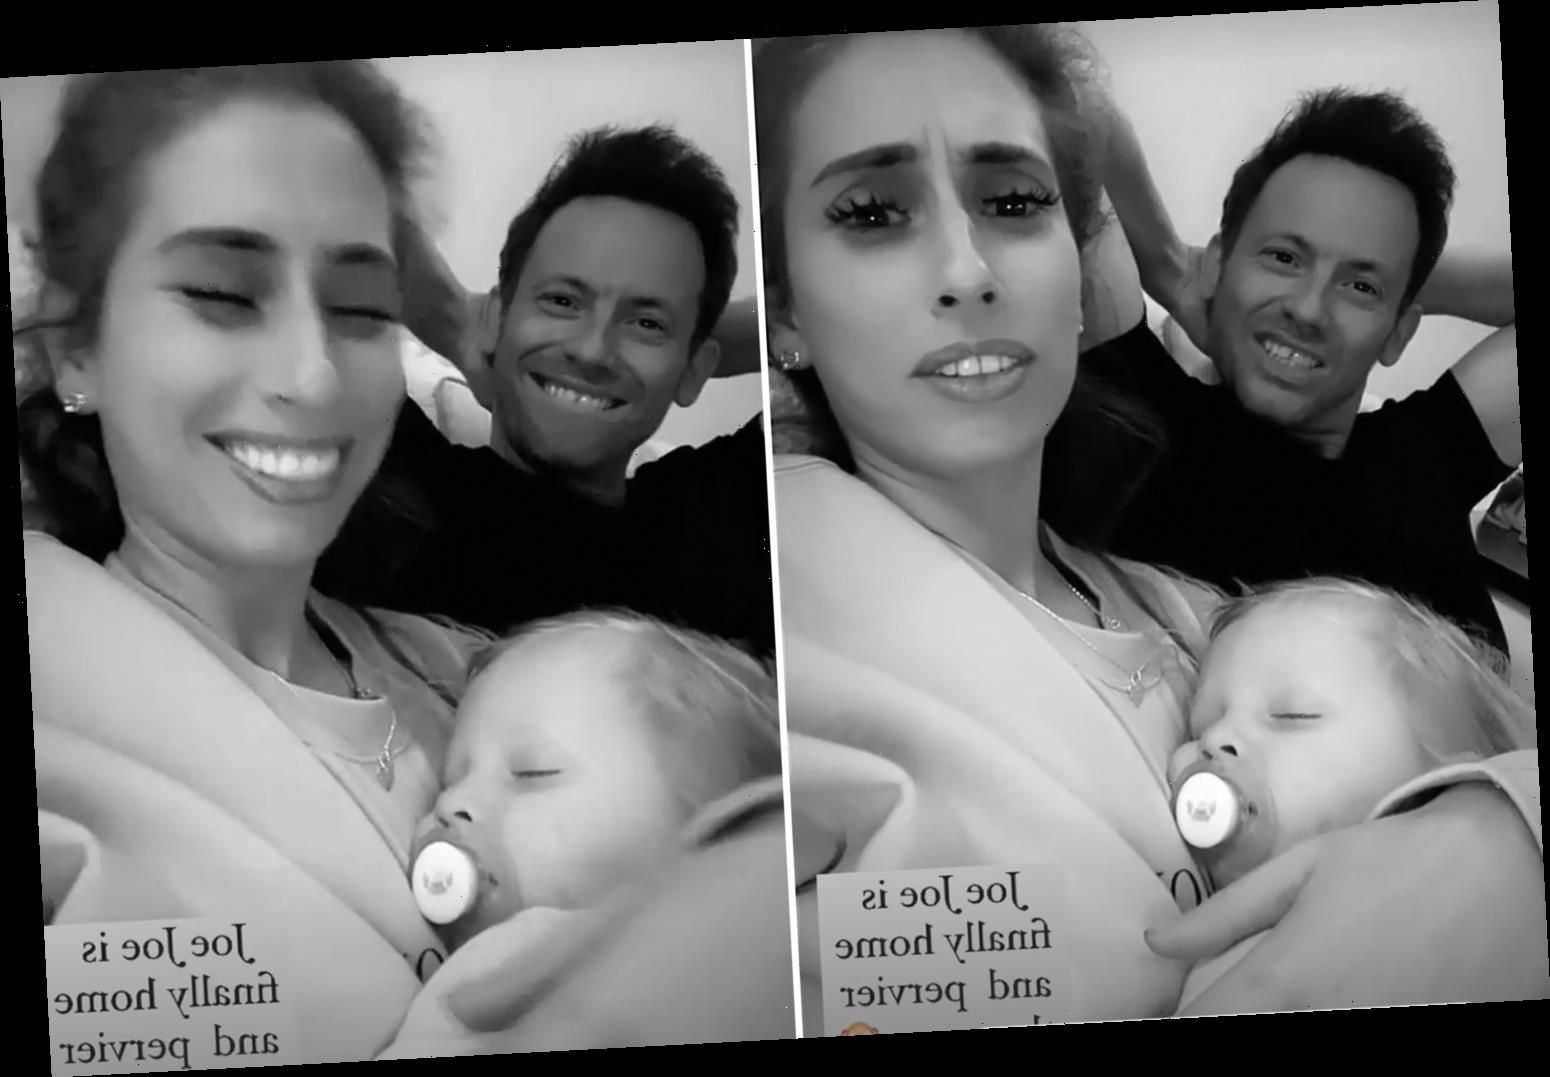 Stacey Solomon says fiancé Joe Swash is 'pervier than ever' as he returns home late at night